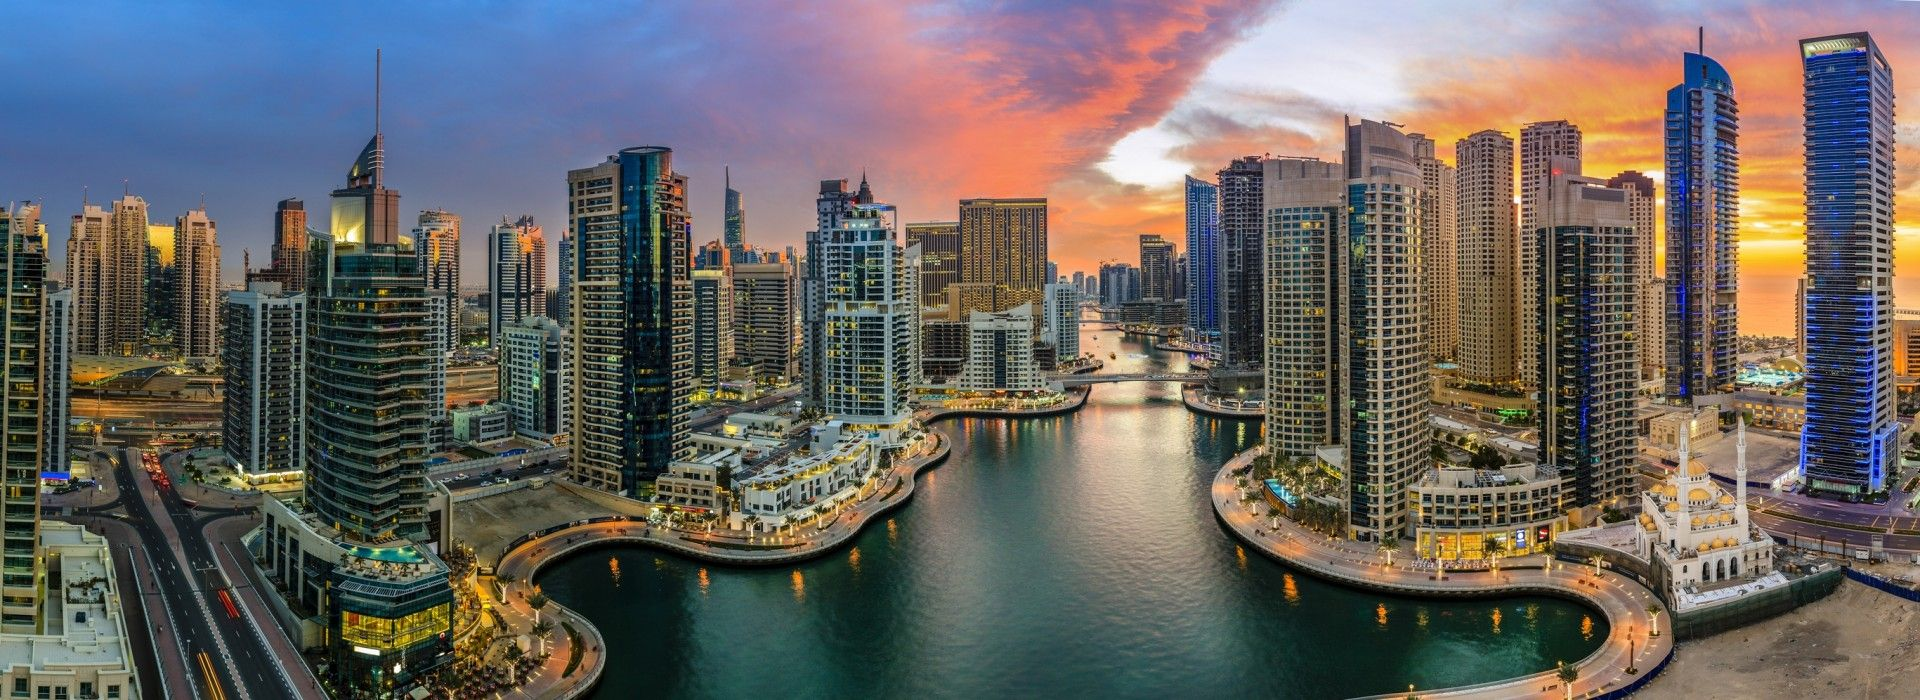 Beach, romance, getaways and relaxation Tours in Middle East